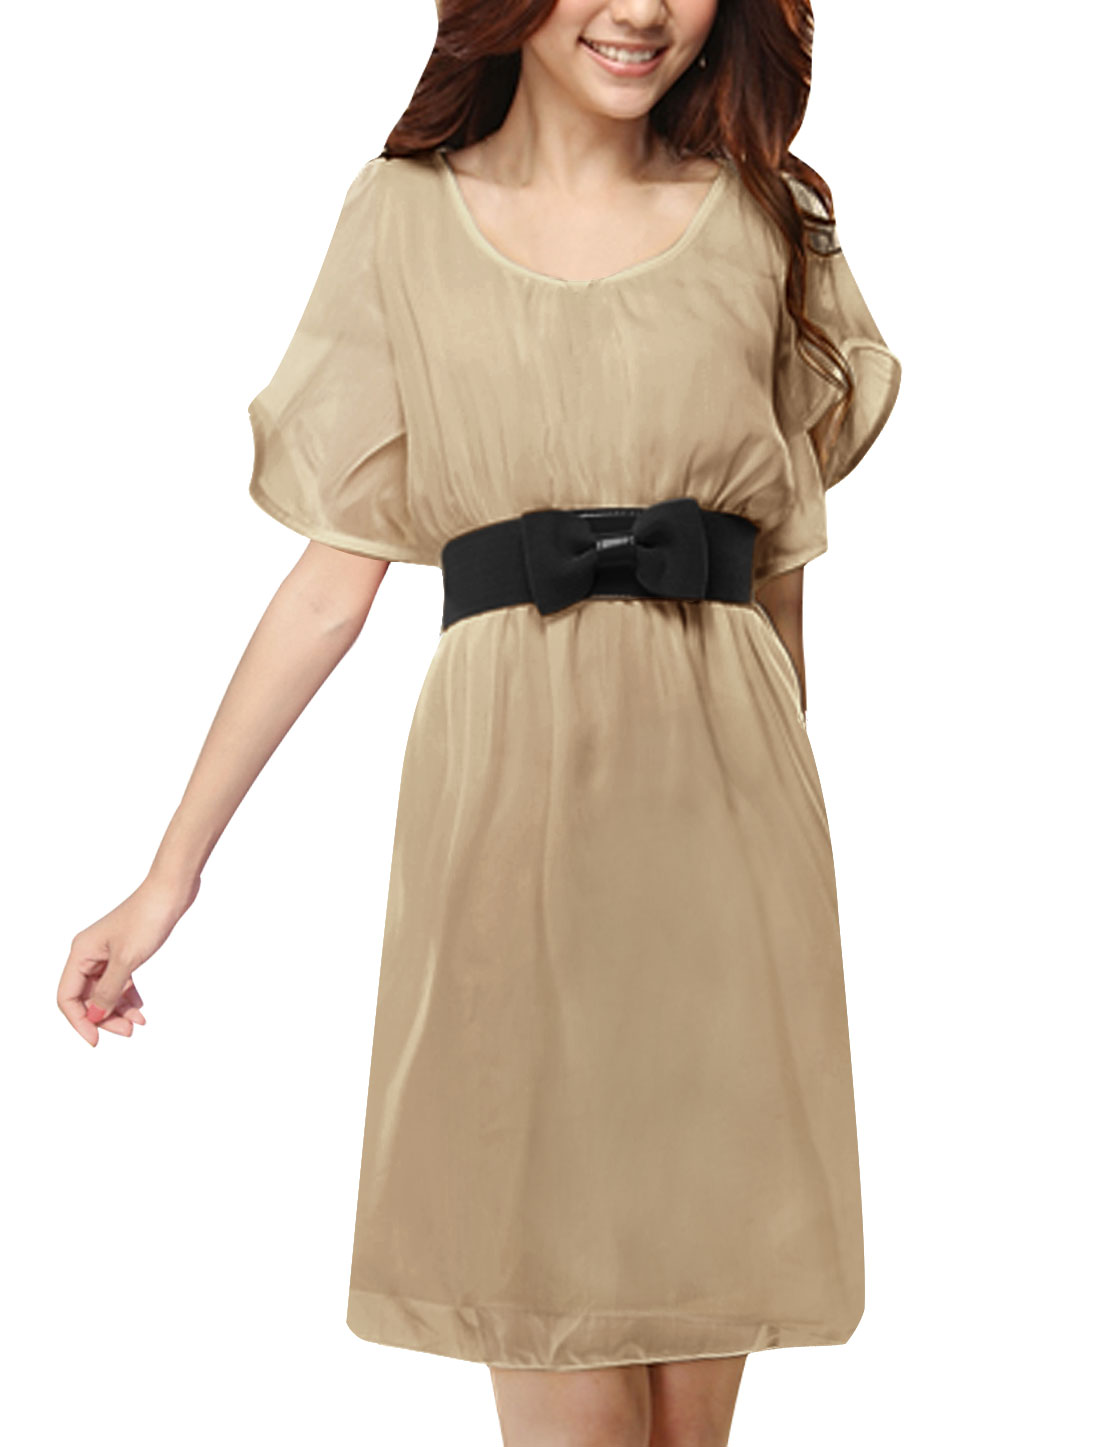 Women Scoop Neck Elastic Waist Above Knee Chiffon Dress w Belt Beige XS